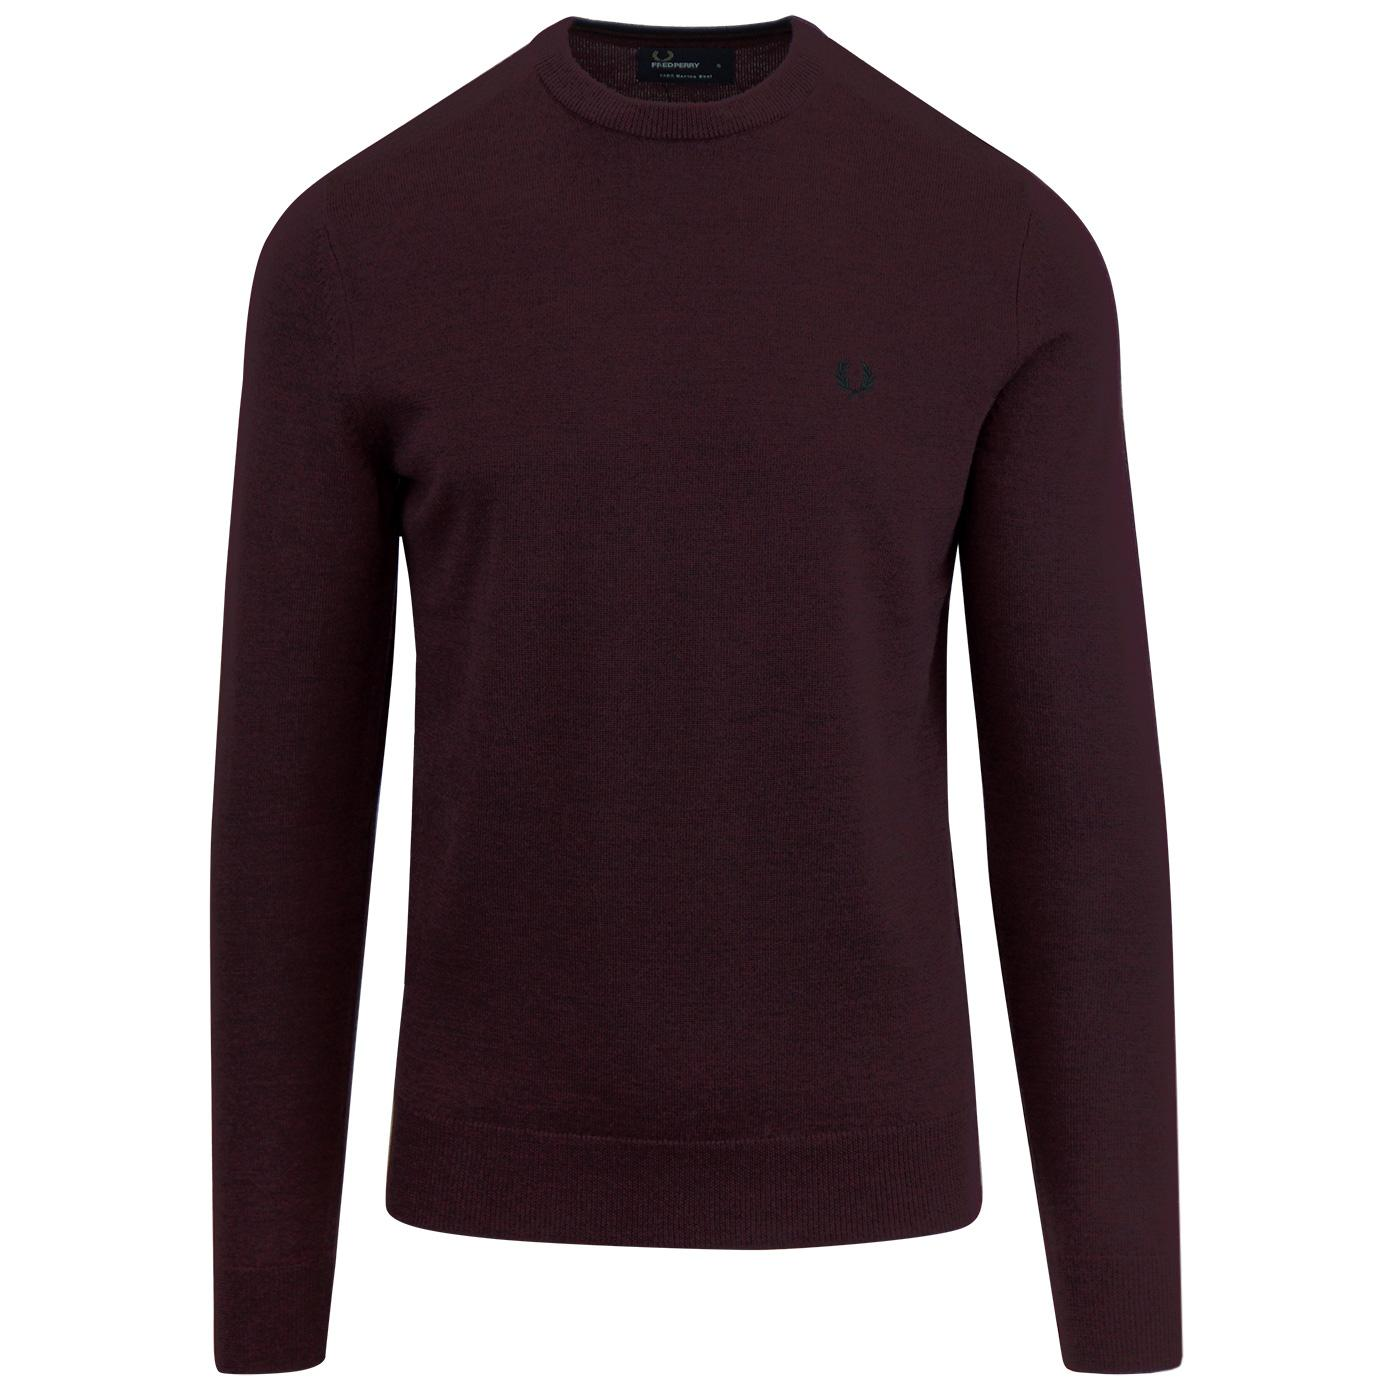 FRED PERRY Merino Wool Crew Neck Jumper (Mahohany)